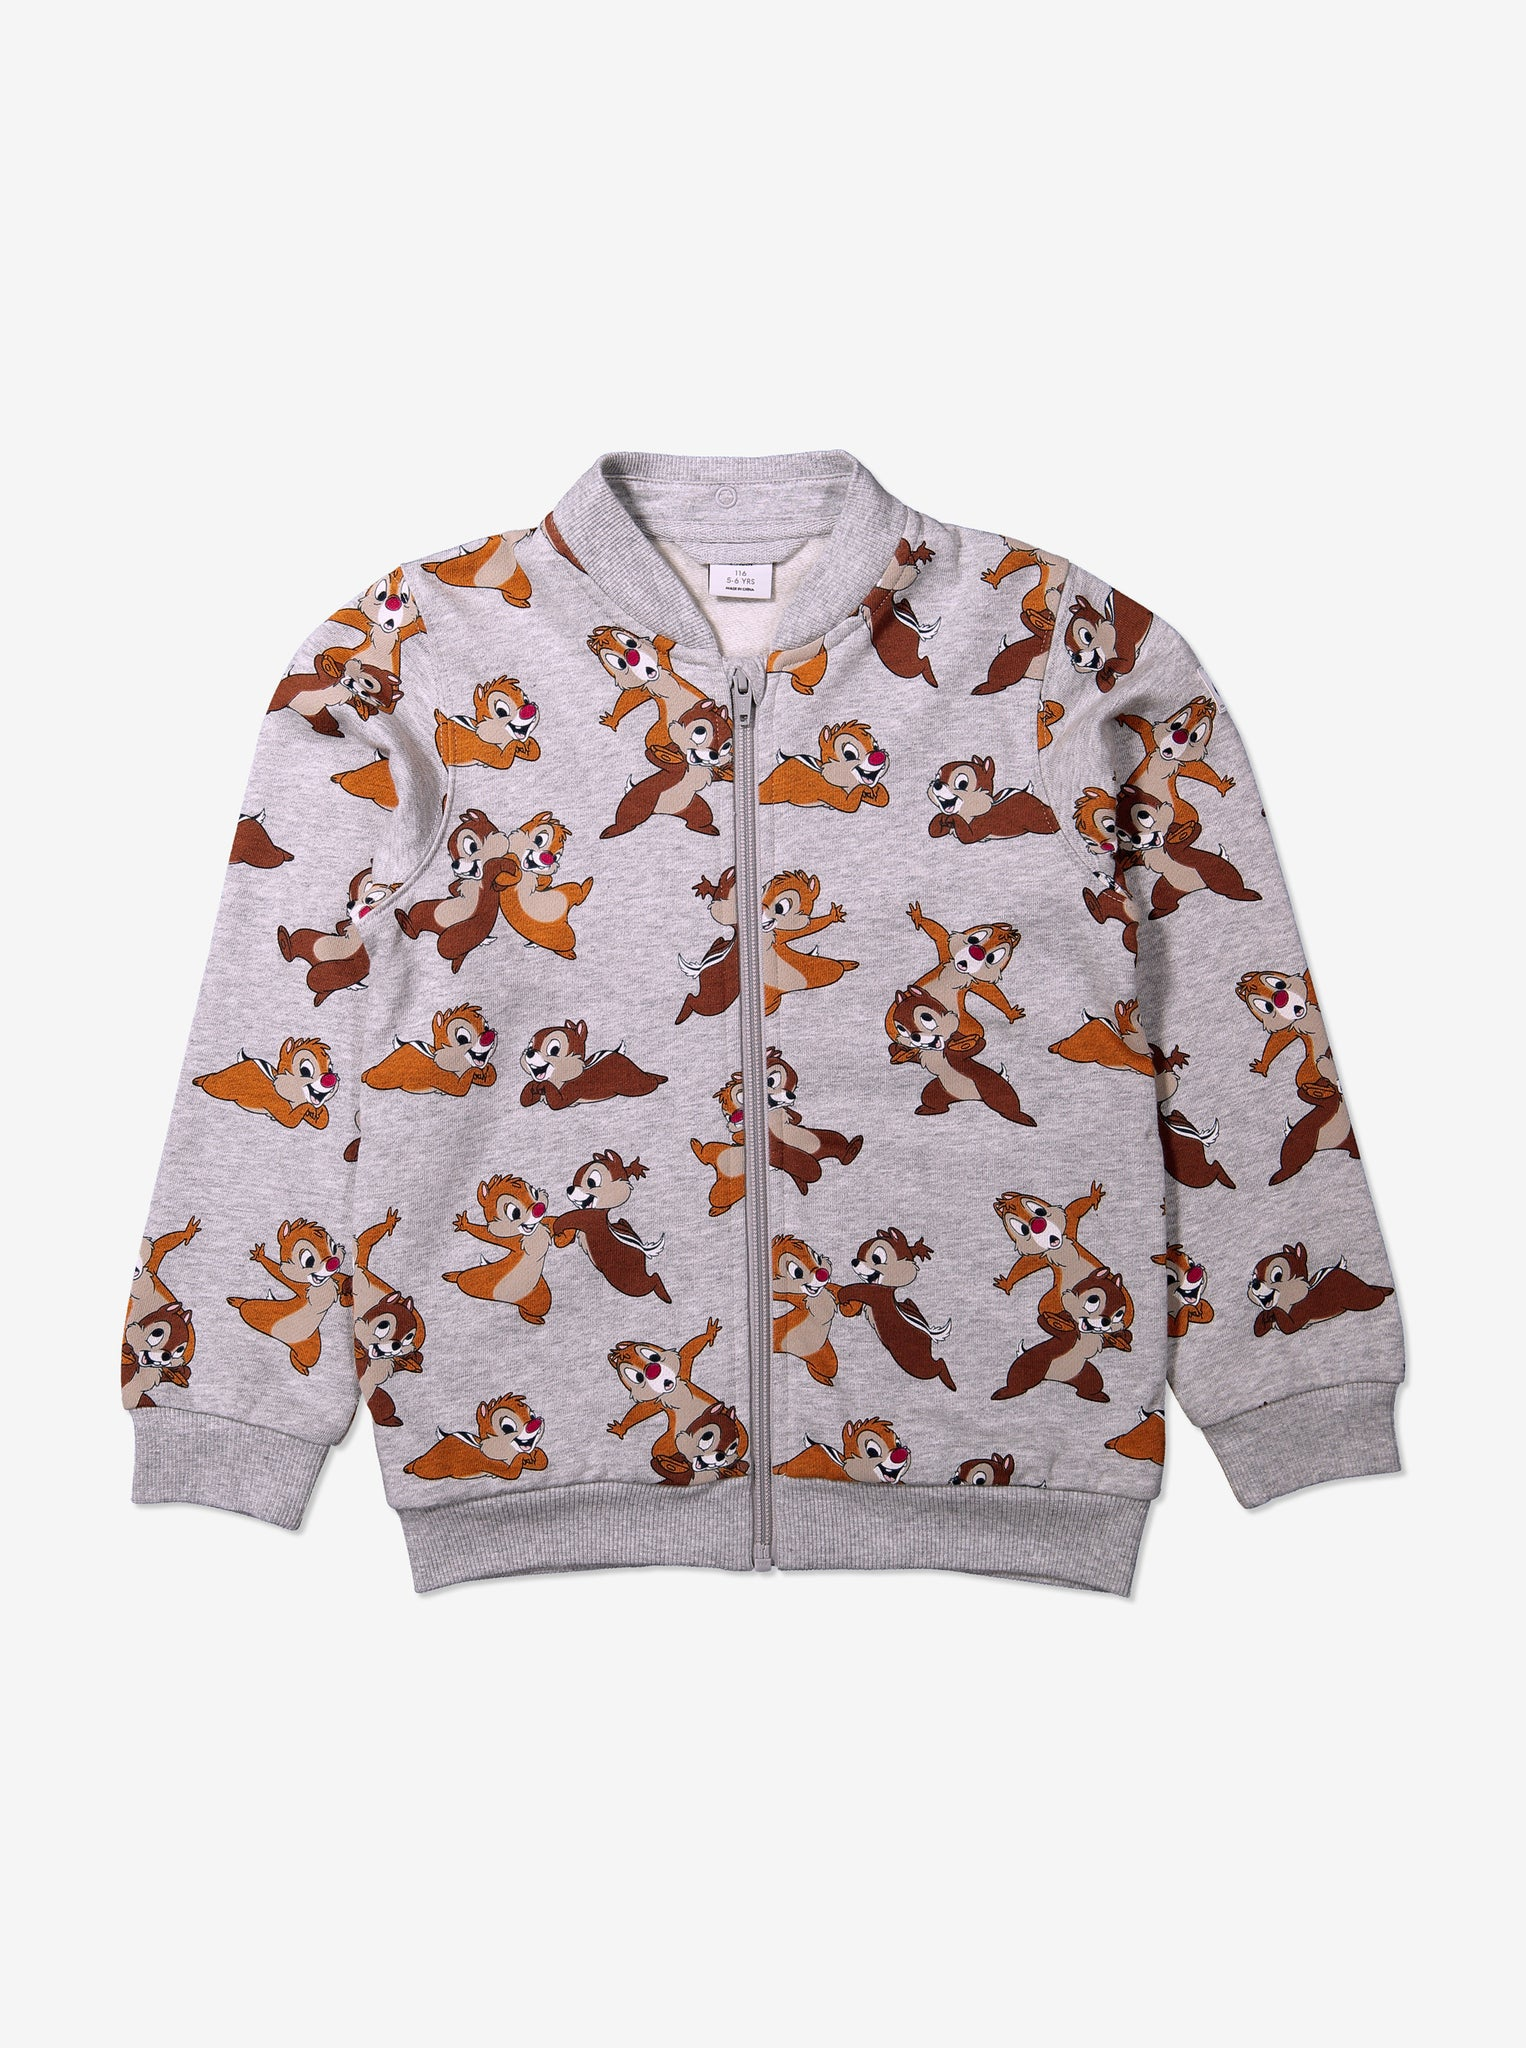 Chip 'n' Dale Print Kids Hooded Jacket